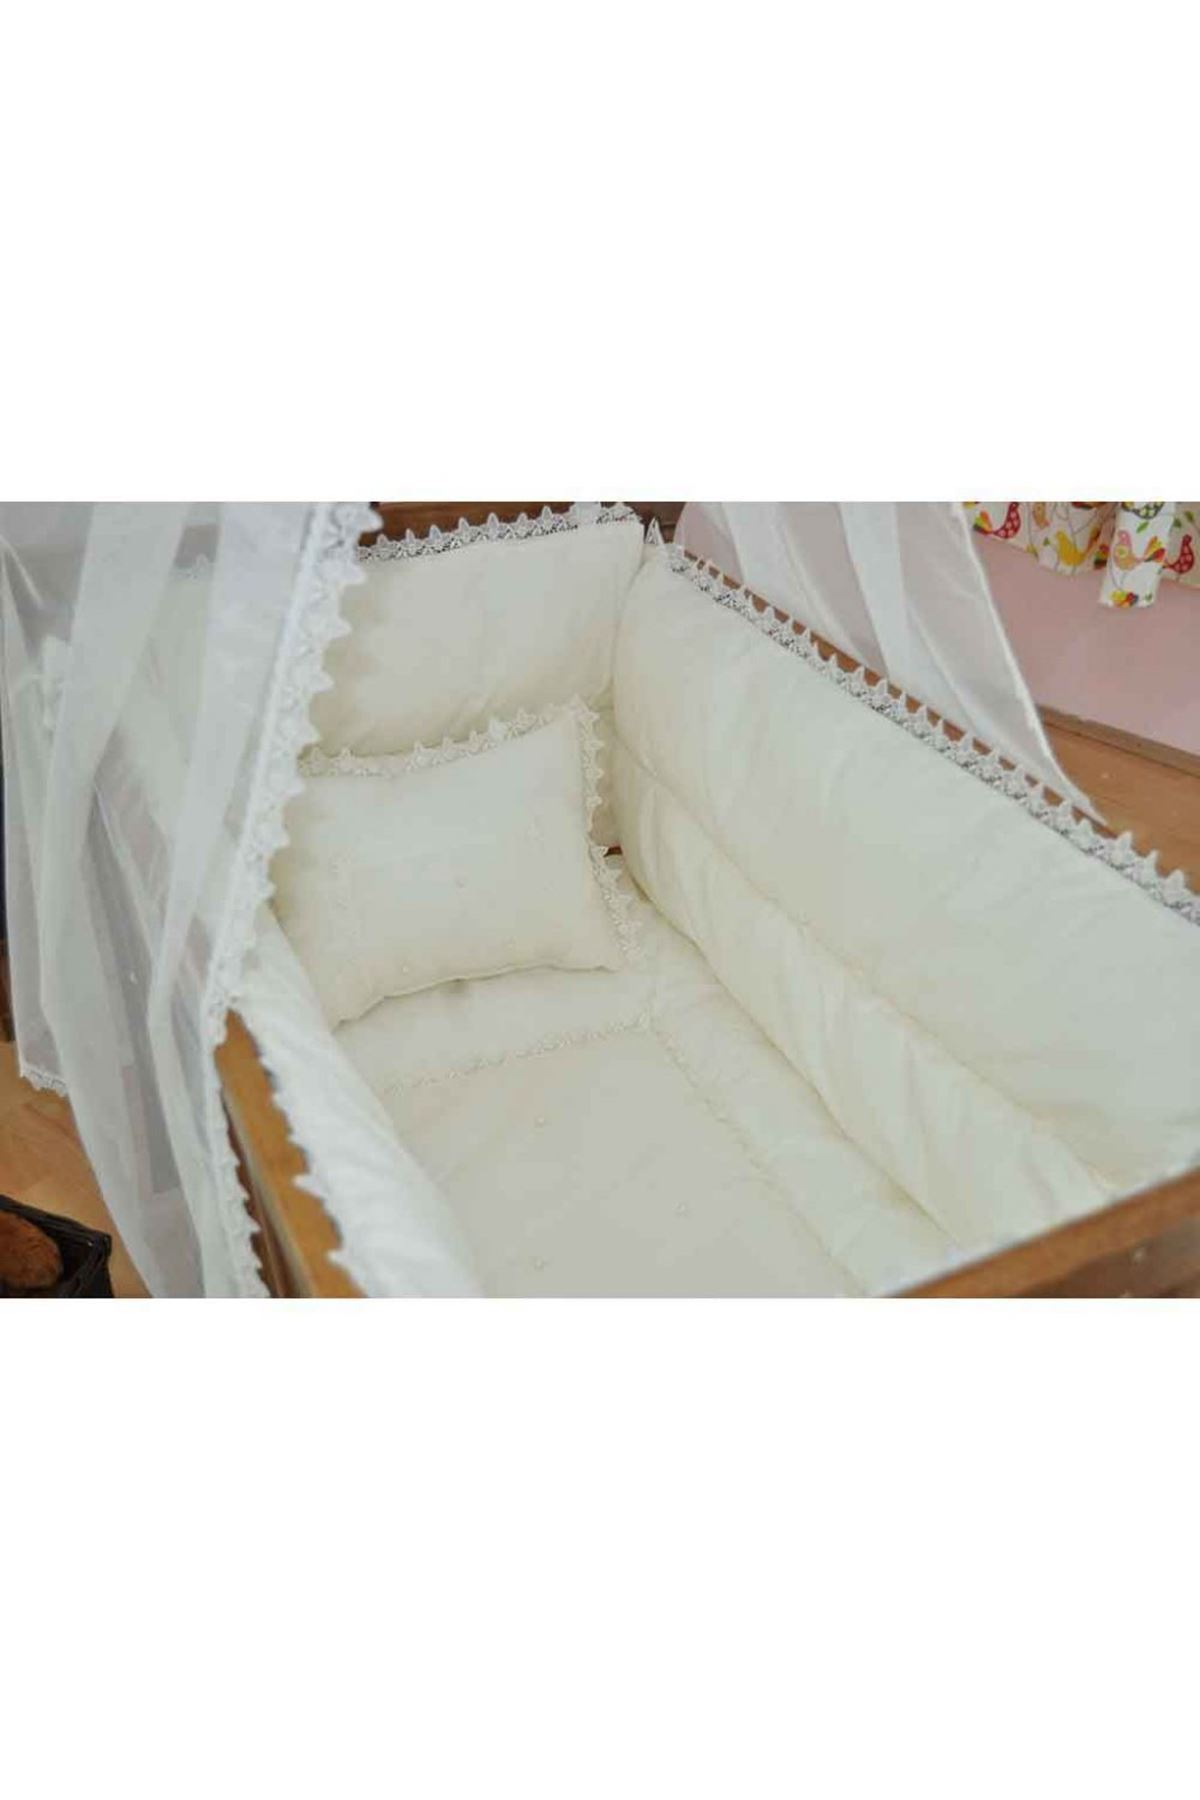 Italian Lacy Cream Baby Sleep Set for Crib